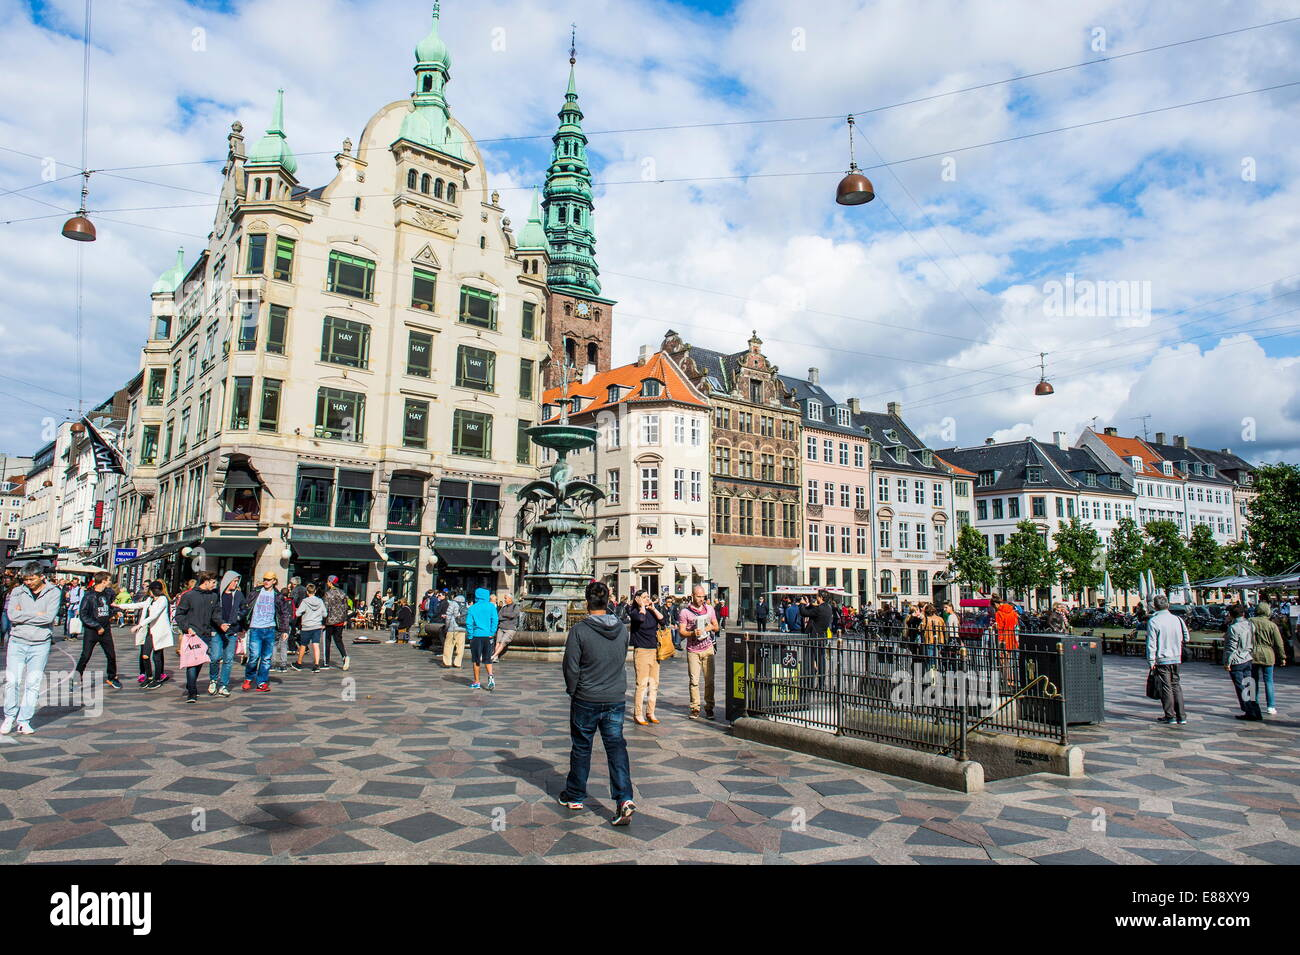 Tourists in Amagertorv (Amager Square), part of the Stroget pedestrian zone, Copernhagen, Denmark, Scandinavia, - Stock Image